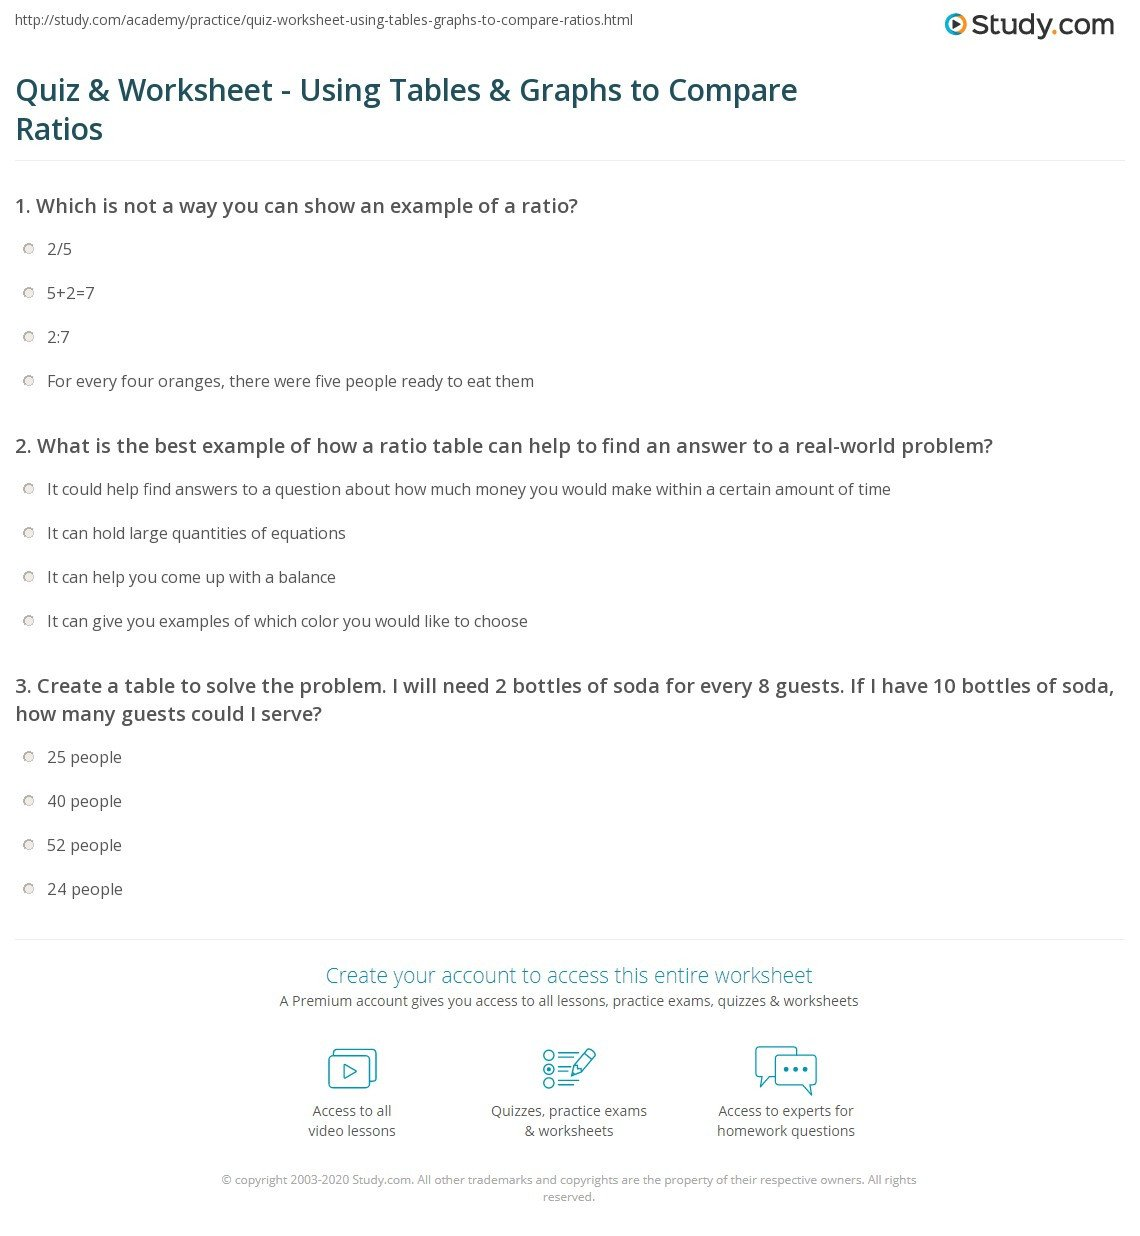 Comparing Ratios Using Tables Worksheet Quiz & Worksheet Using Tables & Graphs to Pare Ratios